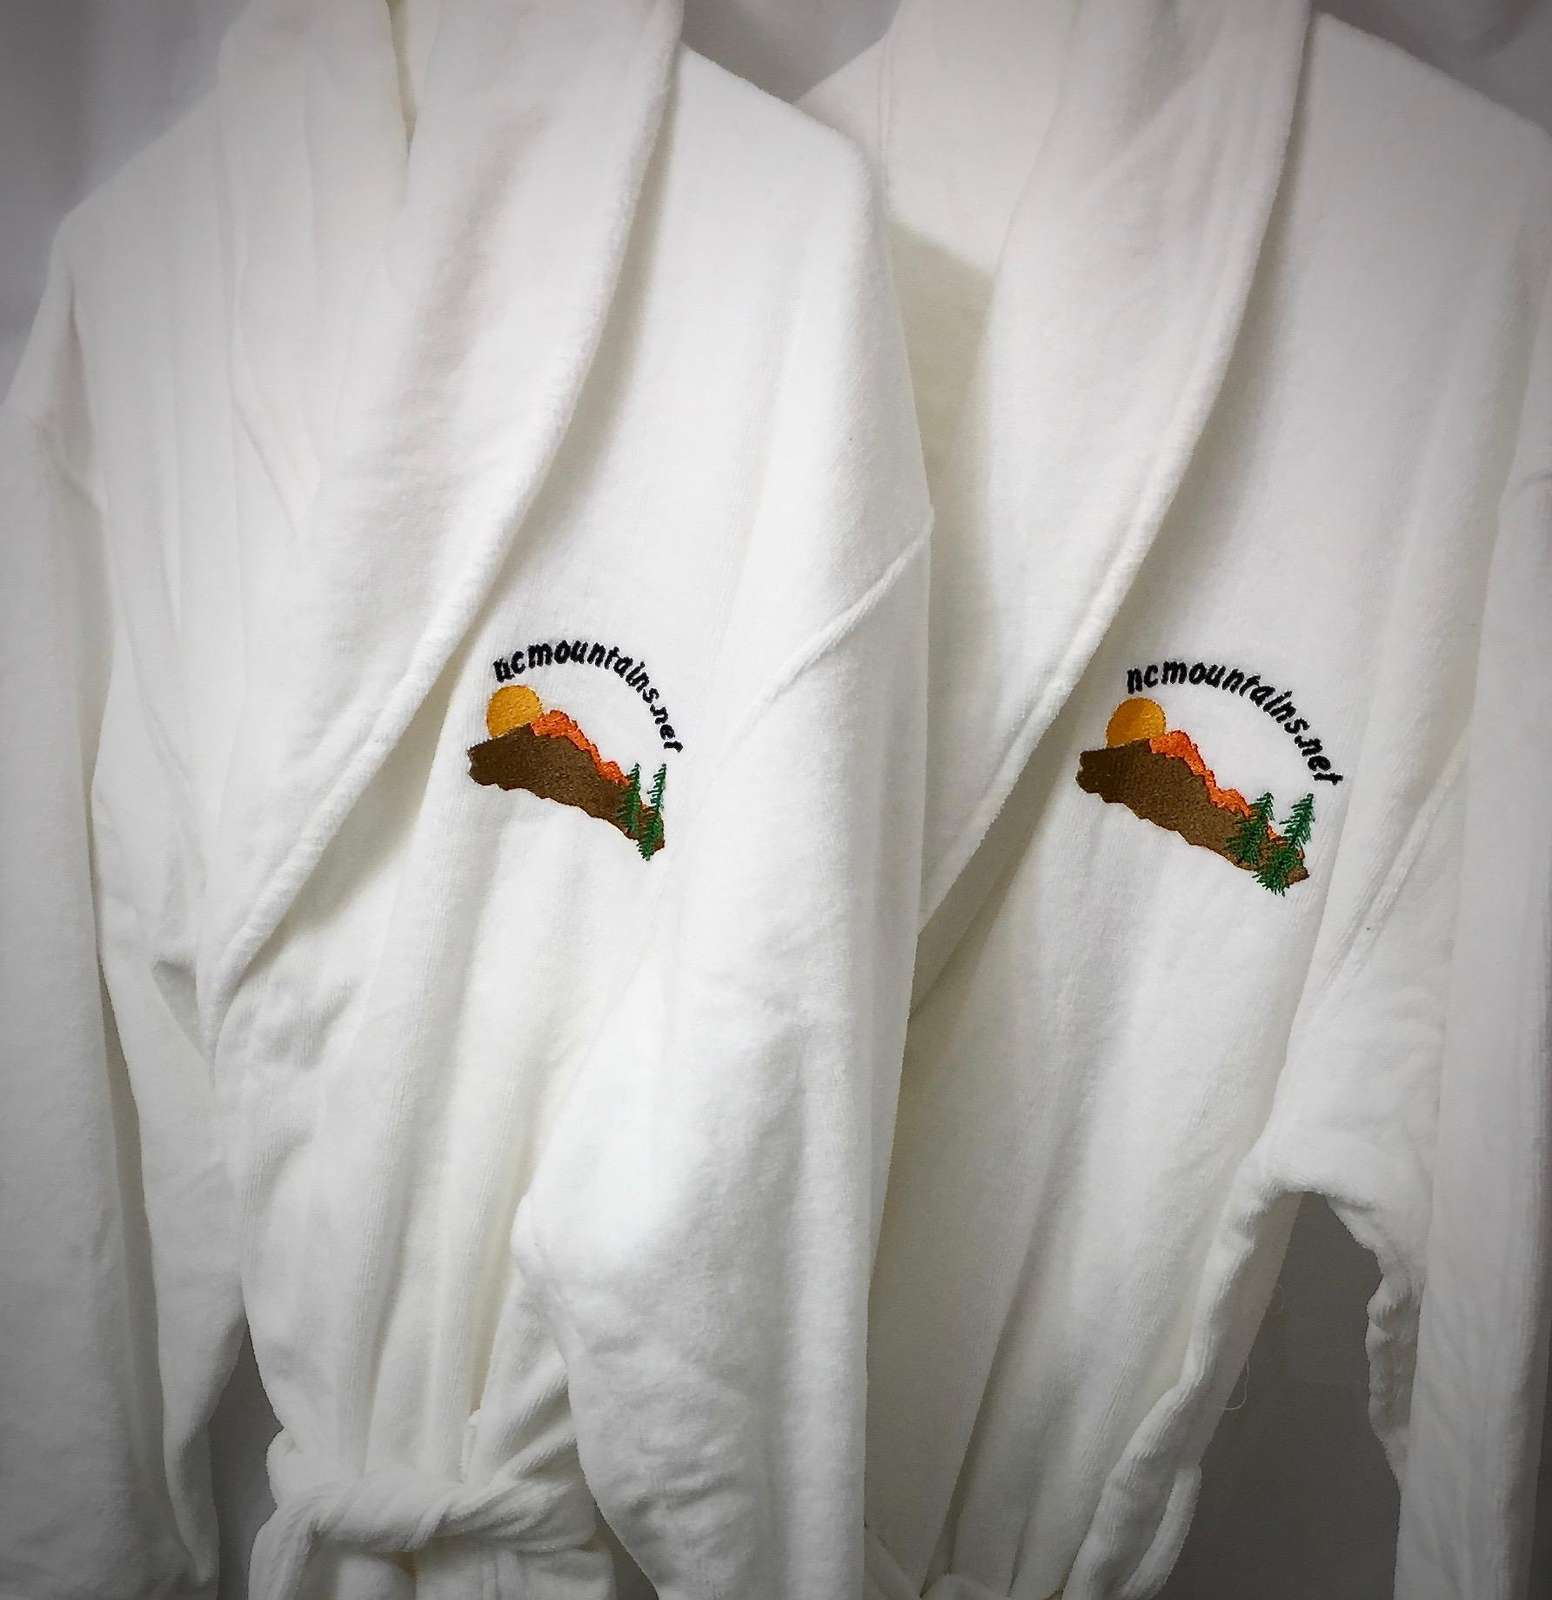 Two Plush Bathrobes are Perfect after a relaxing soak in the Hot Tub! Your relaxation and enjoyment is our priority...